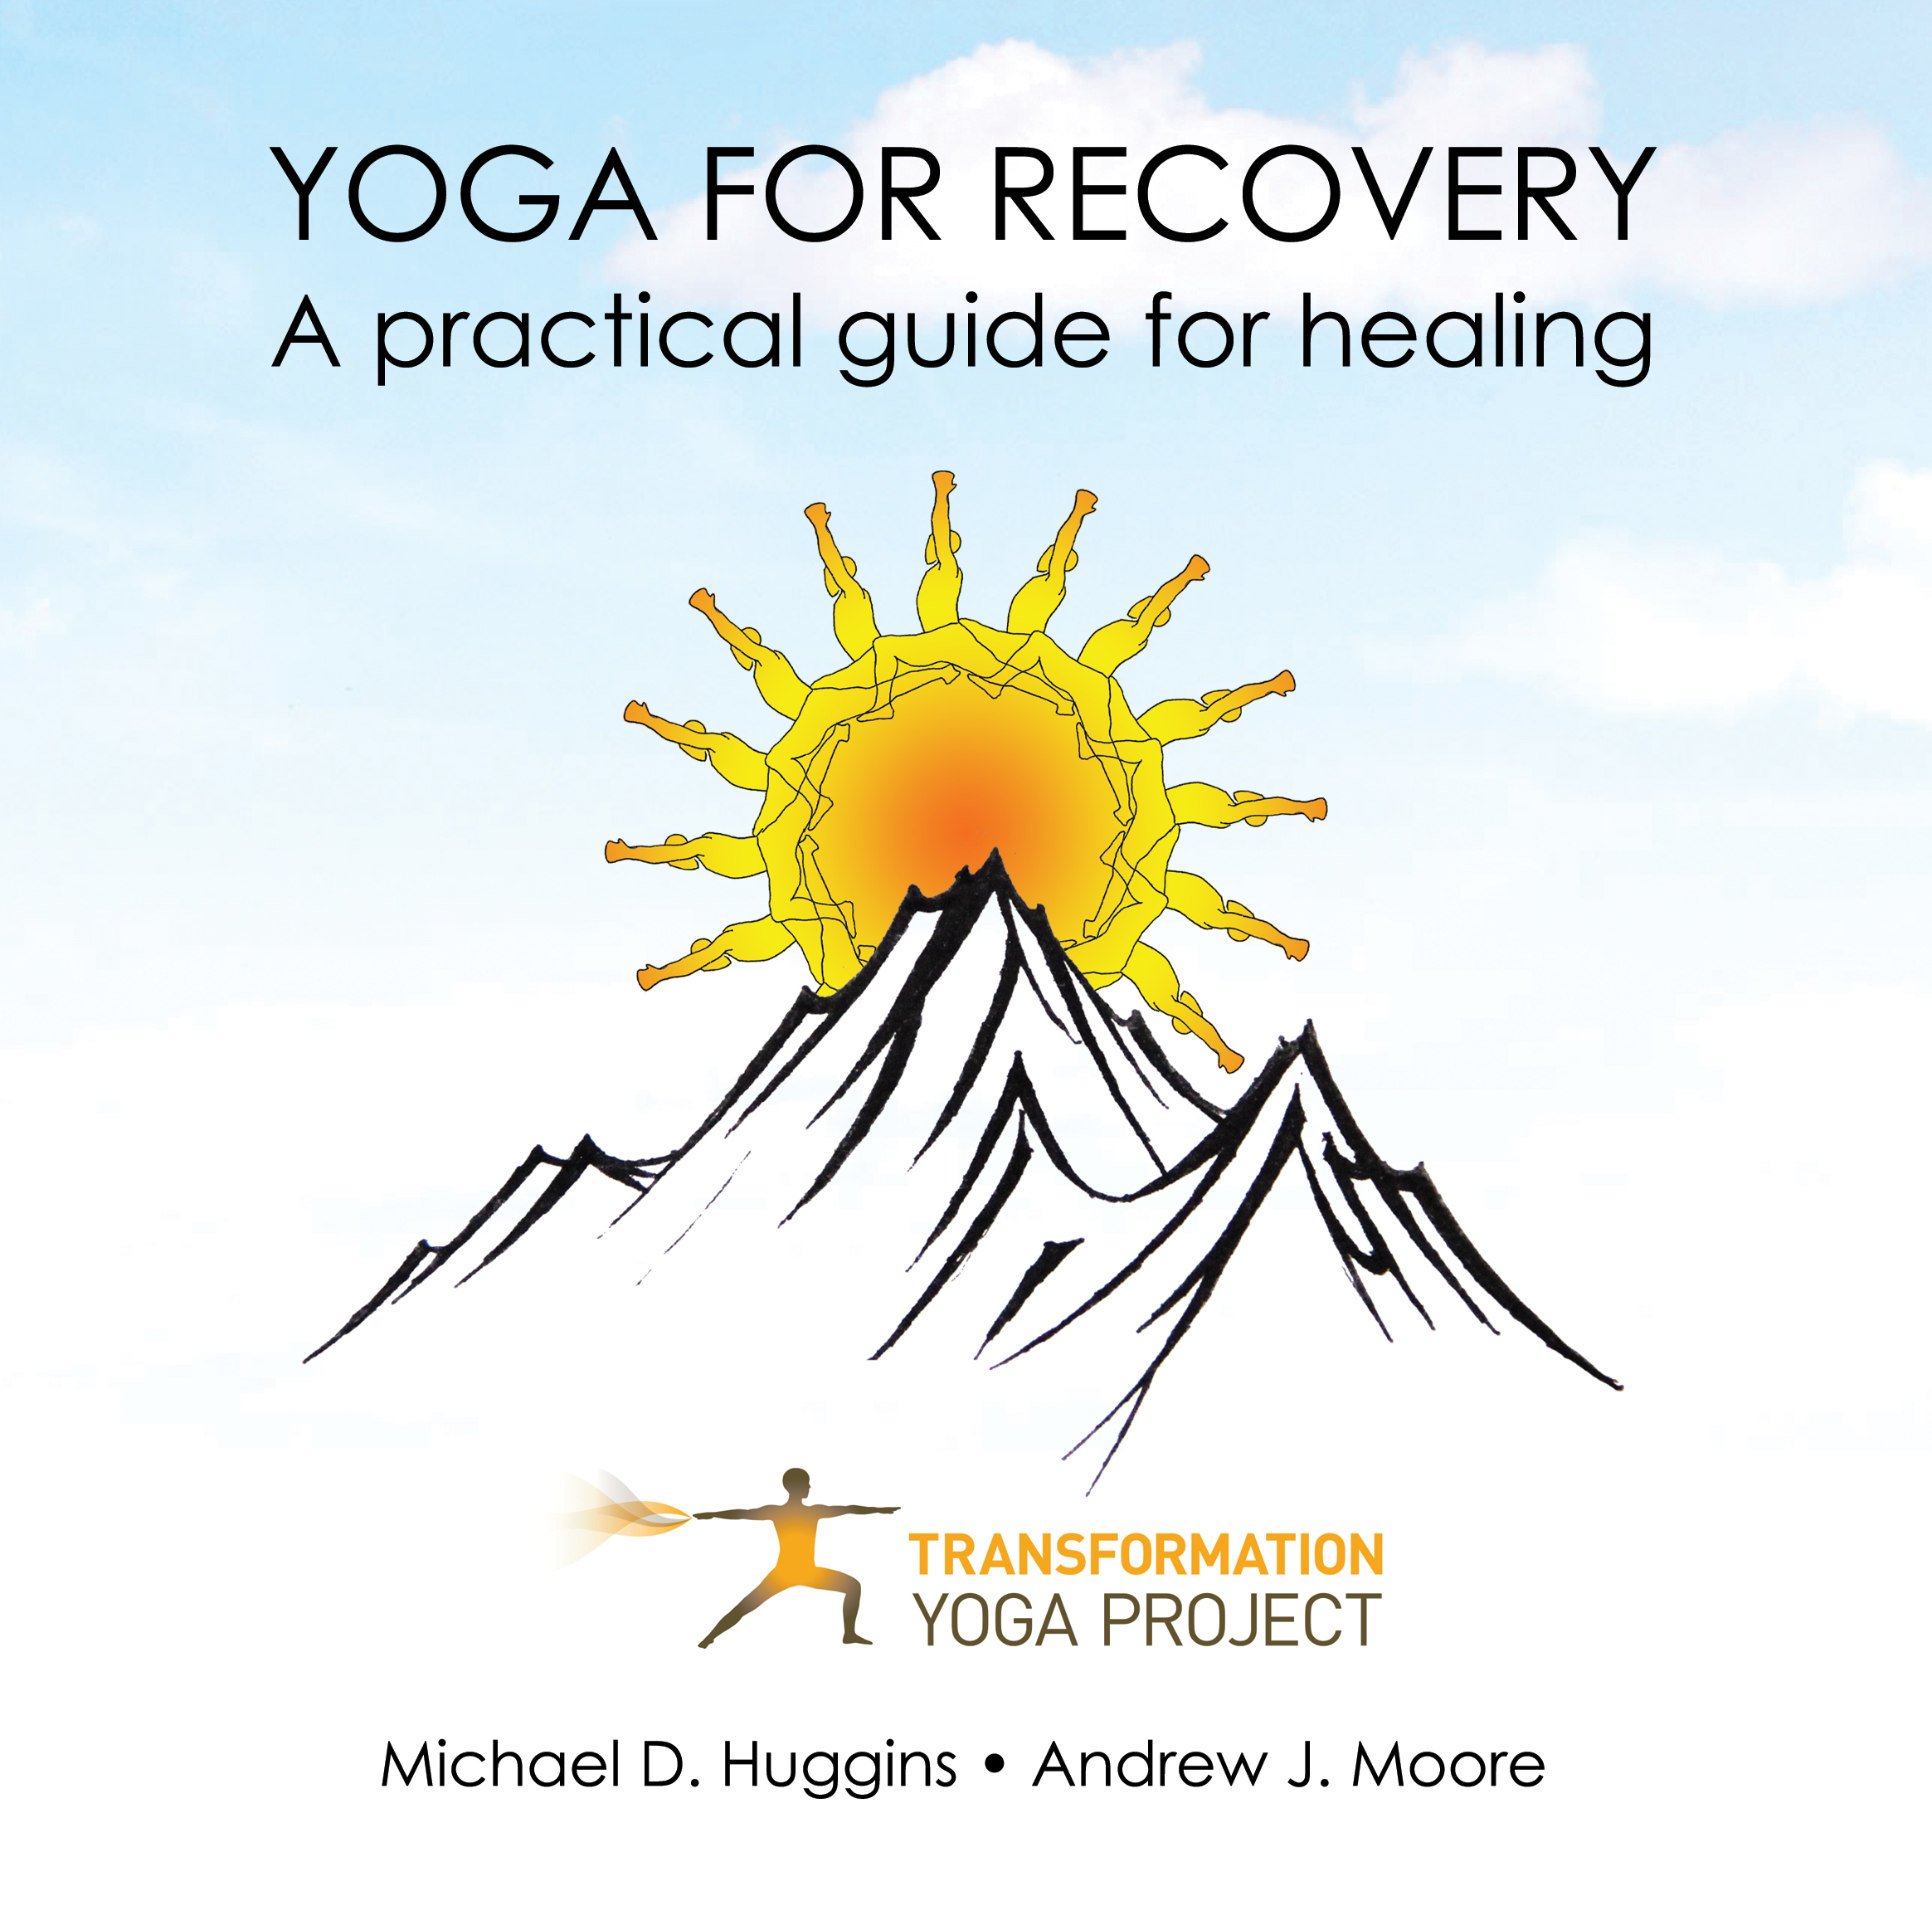 - Our programming is driven by the recognition that individuals have the power to take their well-being into their own hands. This book provides the practical tools to support them along the way.